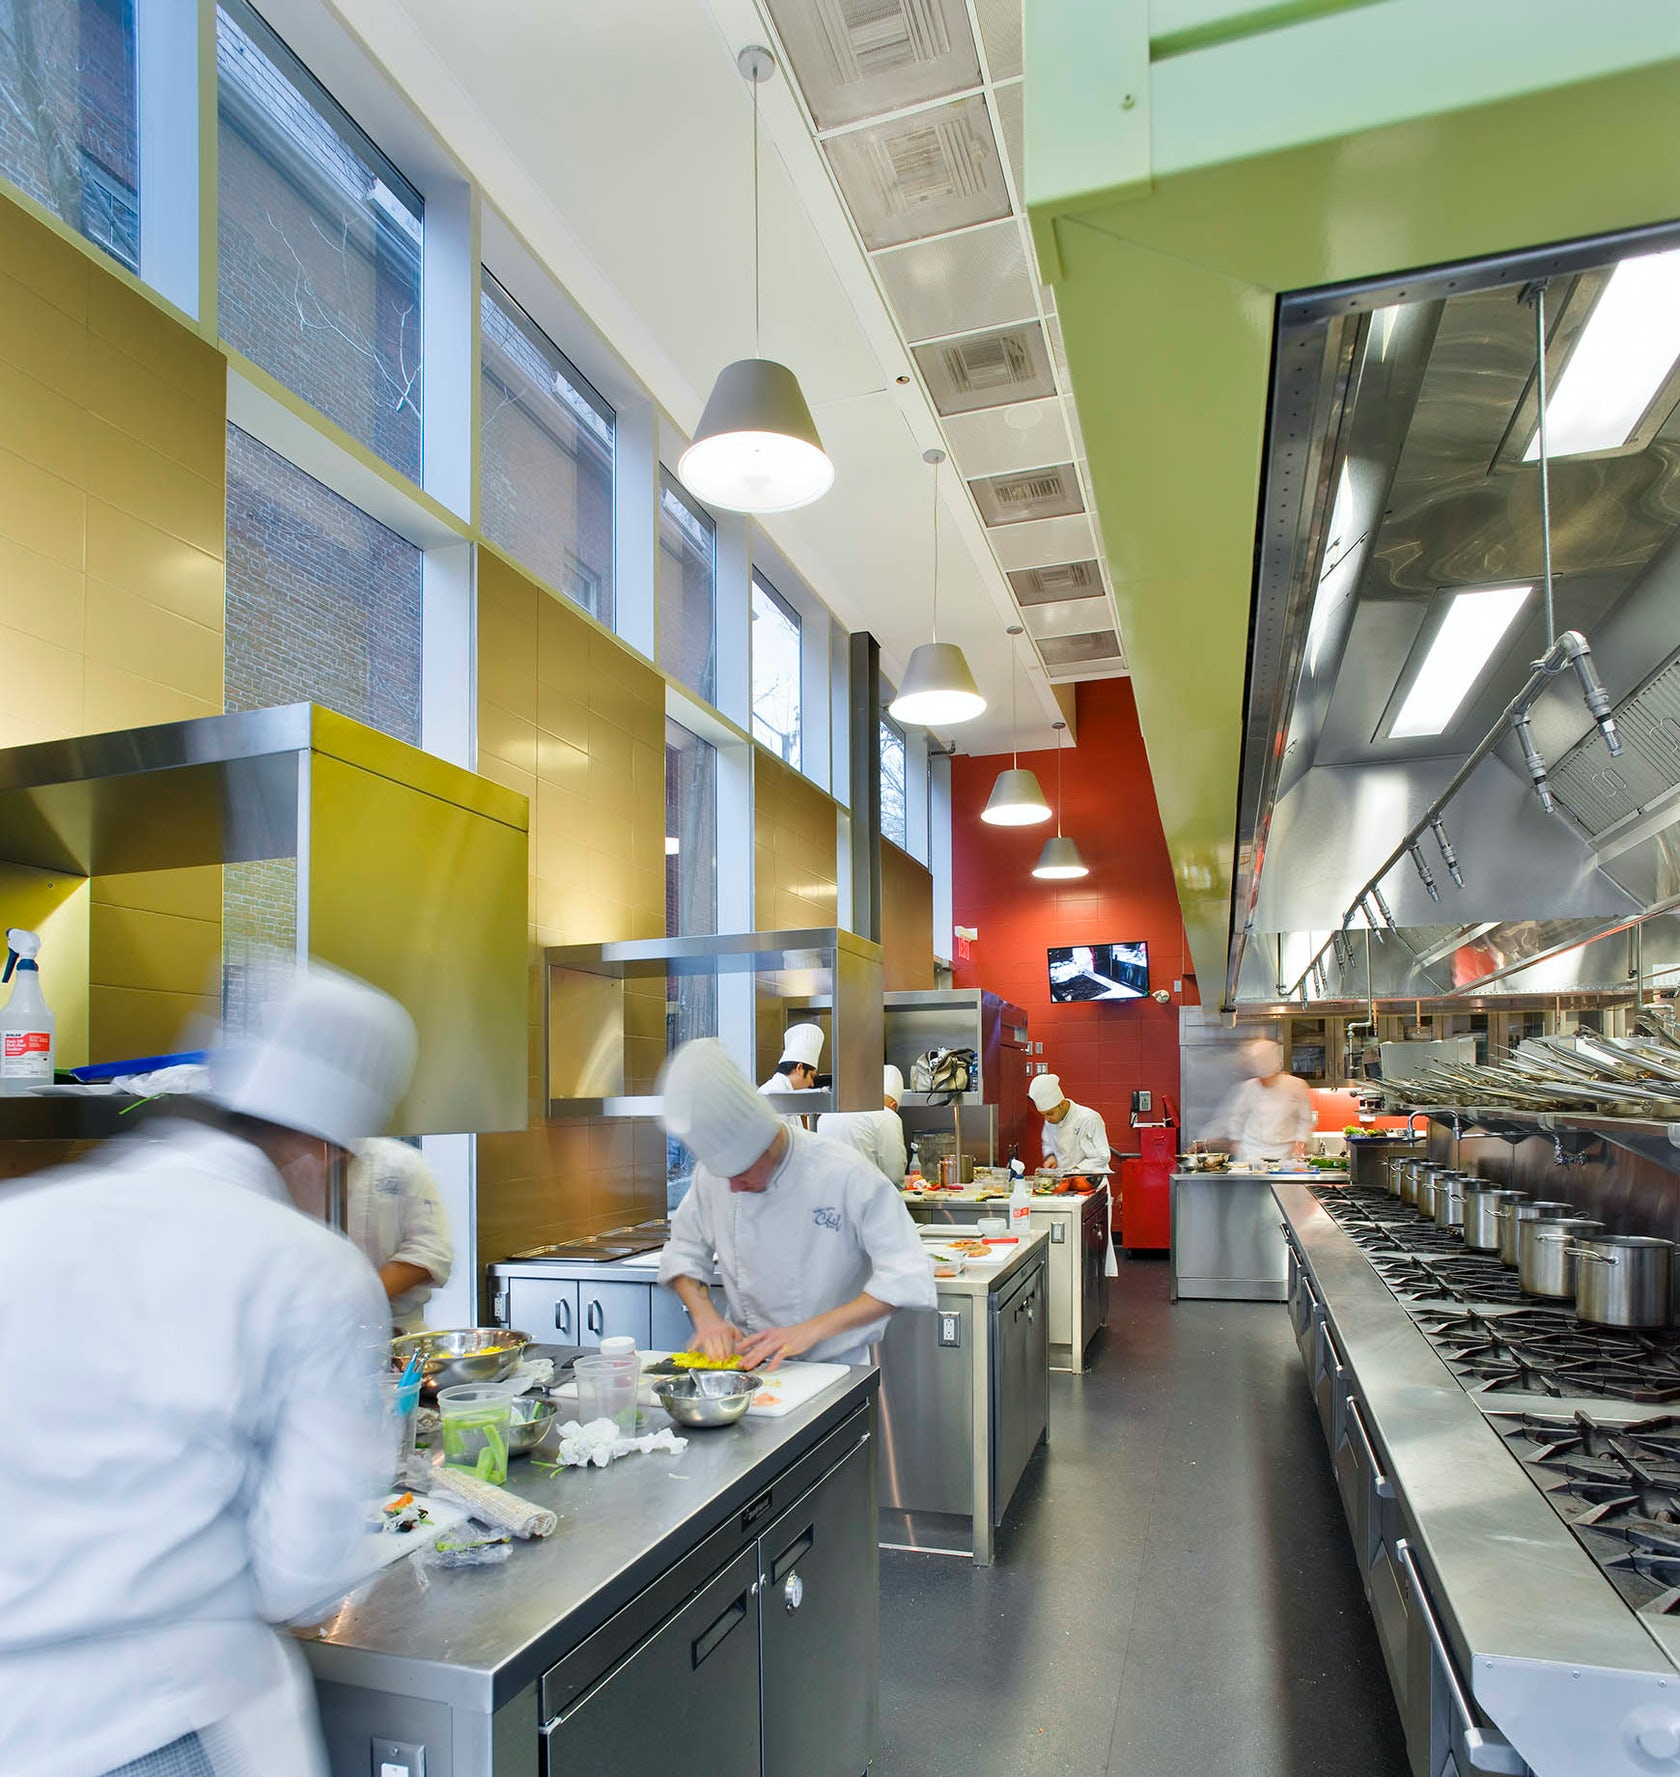 Kitchen Academy: Centre For Hospitality And Culinary Arts